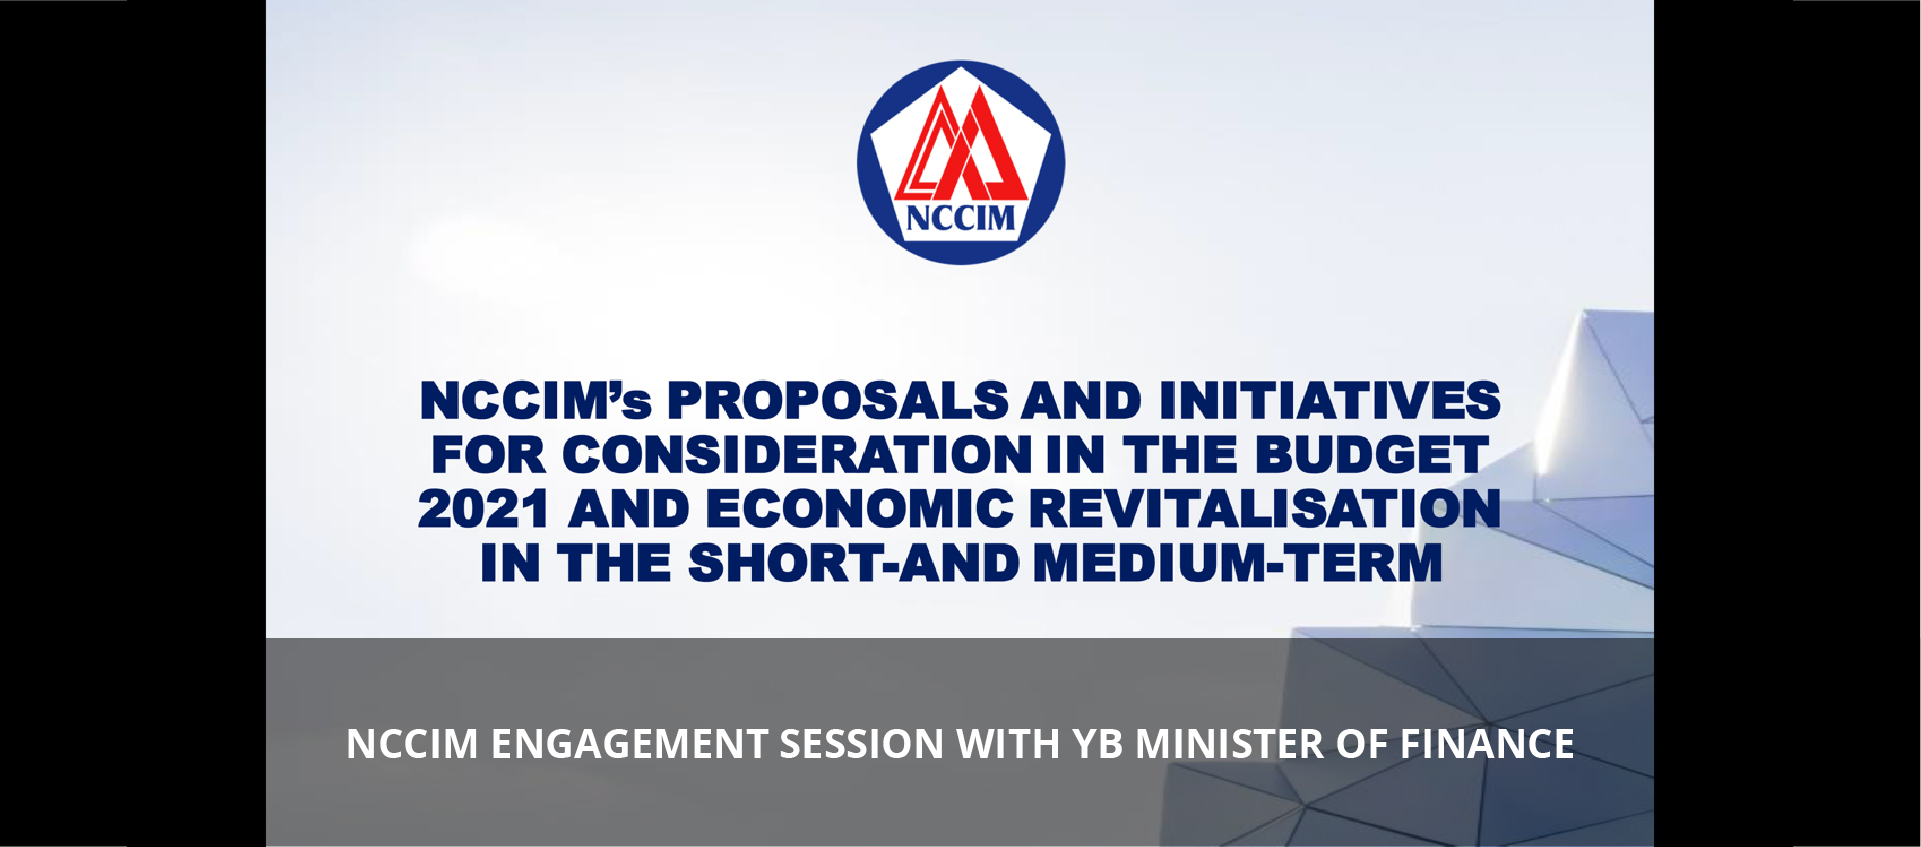 NCCIM ENGAGEMENT SESSION WITH YB MINISTER OF FINANCE